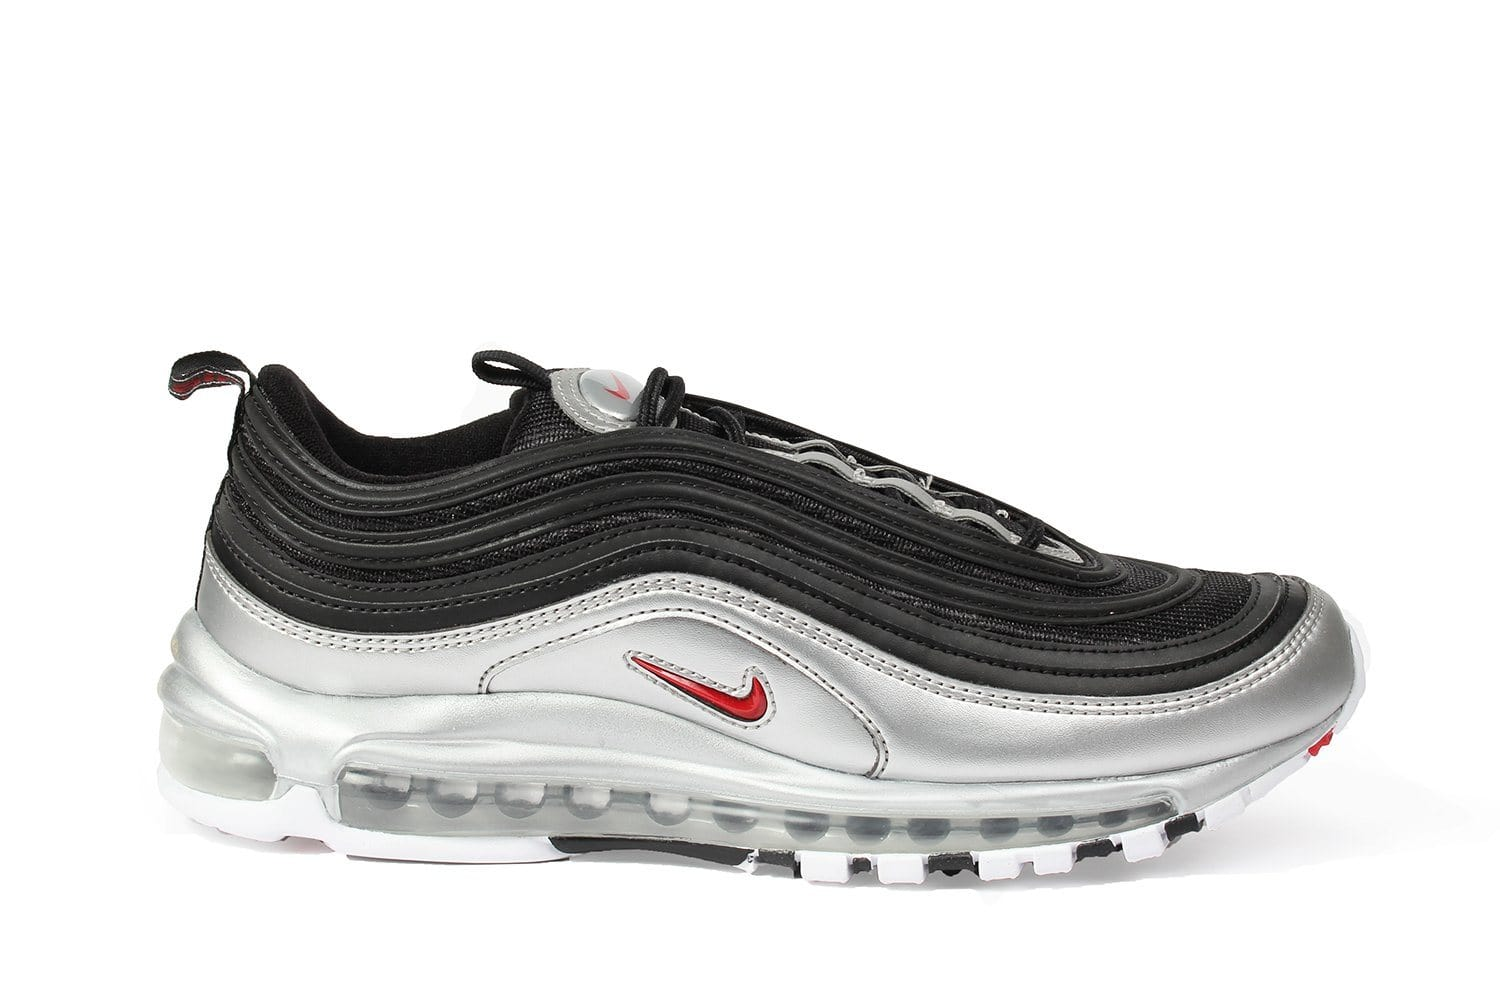 official photos ac05b 1ea3b NIKE AIR MAX 97 QS - AT5458-002 MENS FOOTWEAR NIKE BLACK VARSITY RED